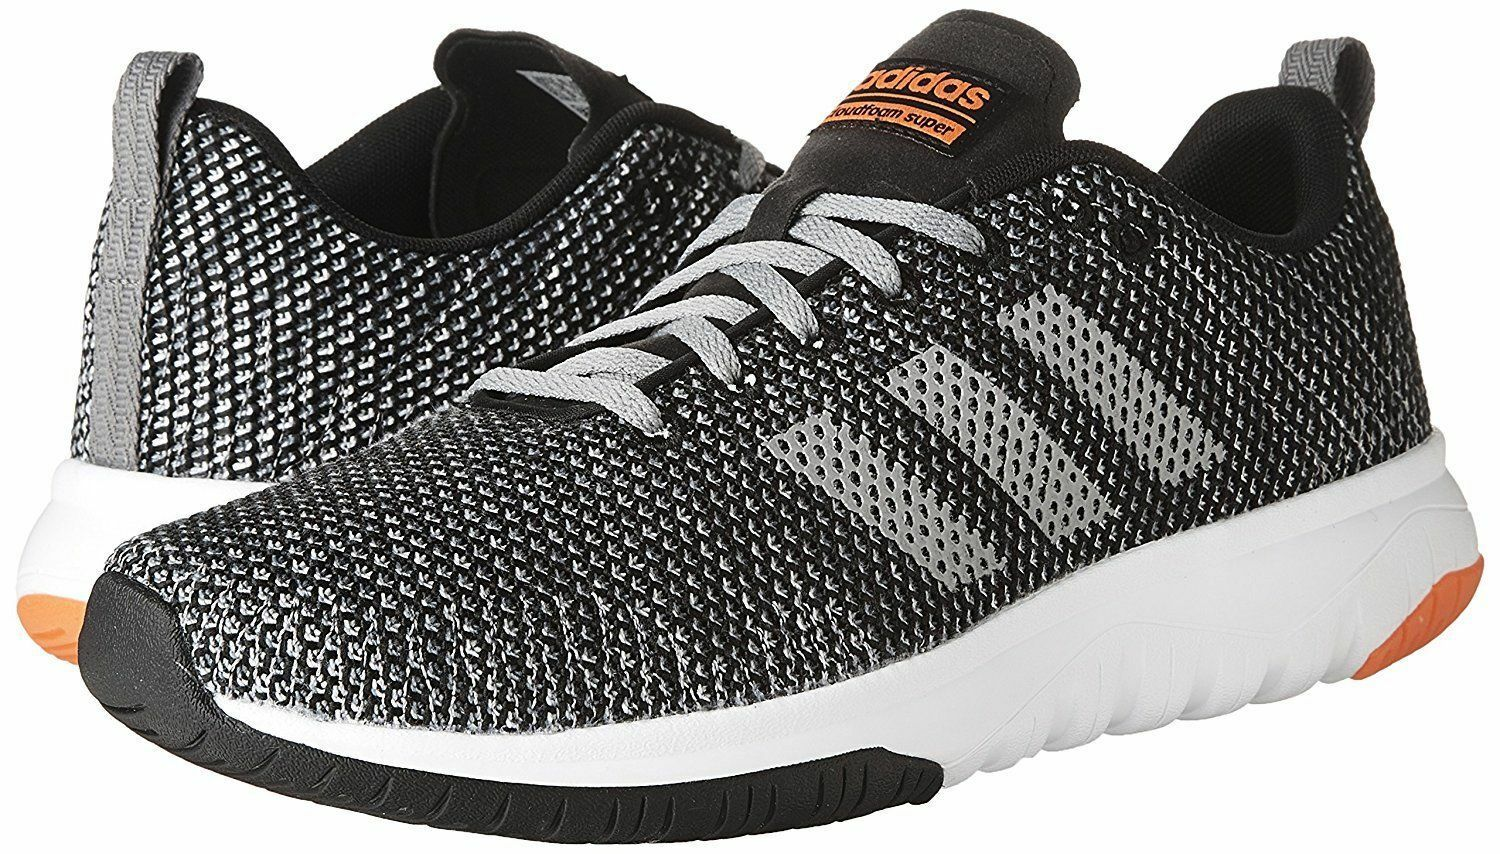 ADIDAS NEO CF SUPER FLEX LOW SNEAKERS Uomo SHOES BLACK/GREY BB9757 SIZE 12 NEW